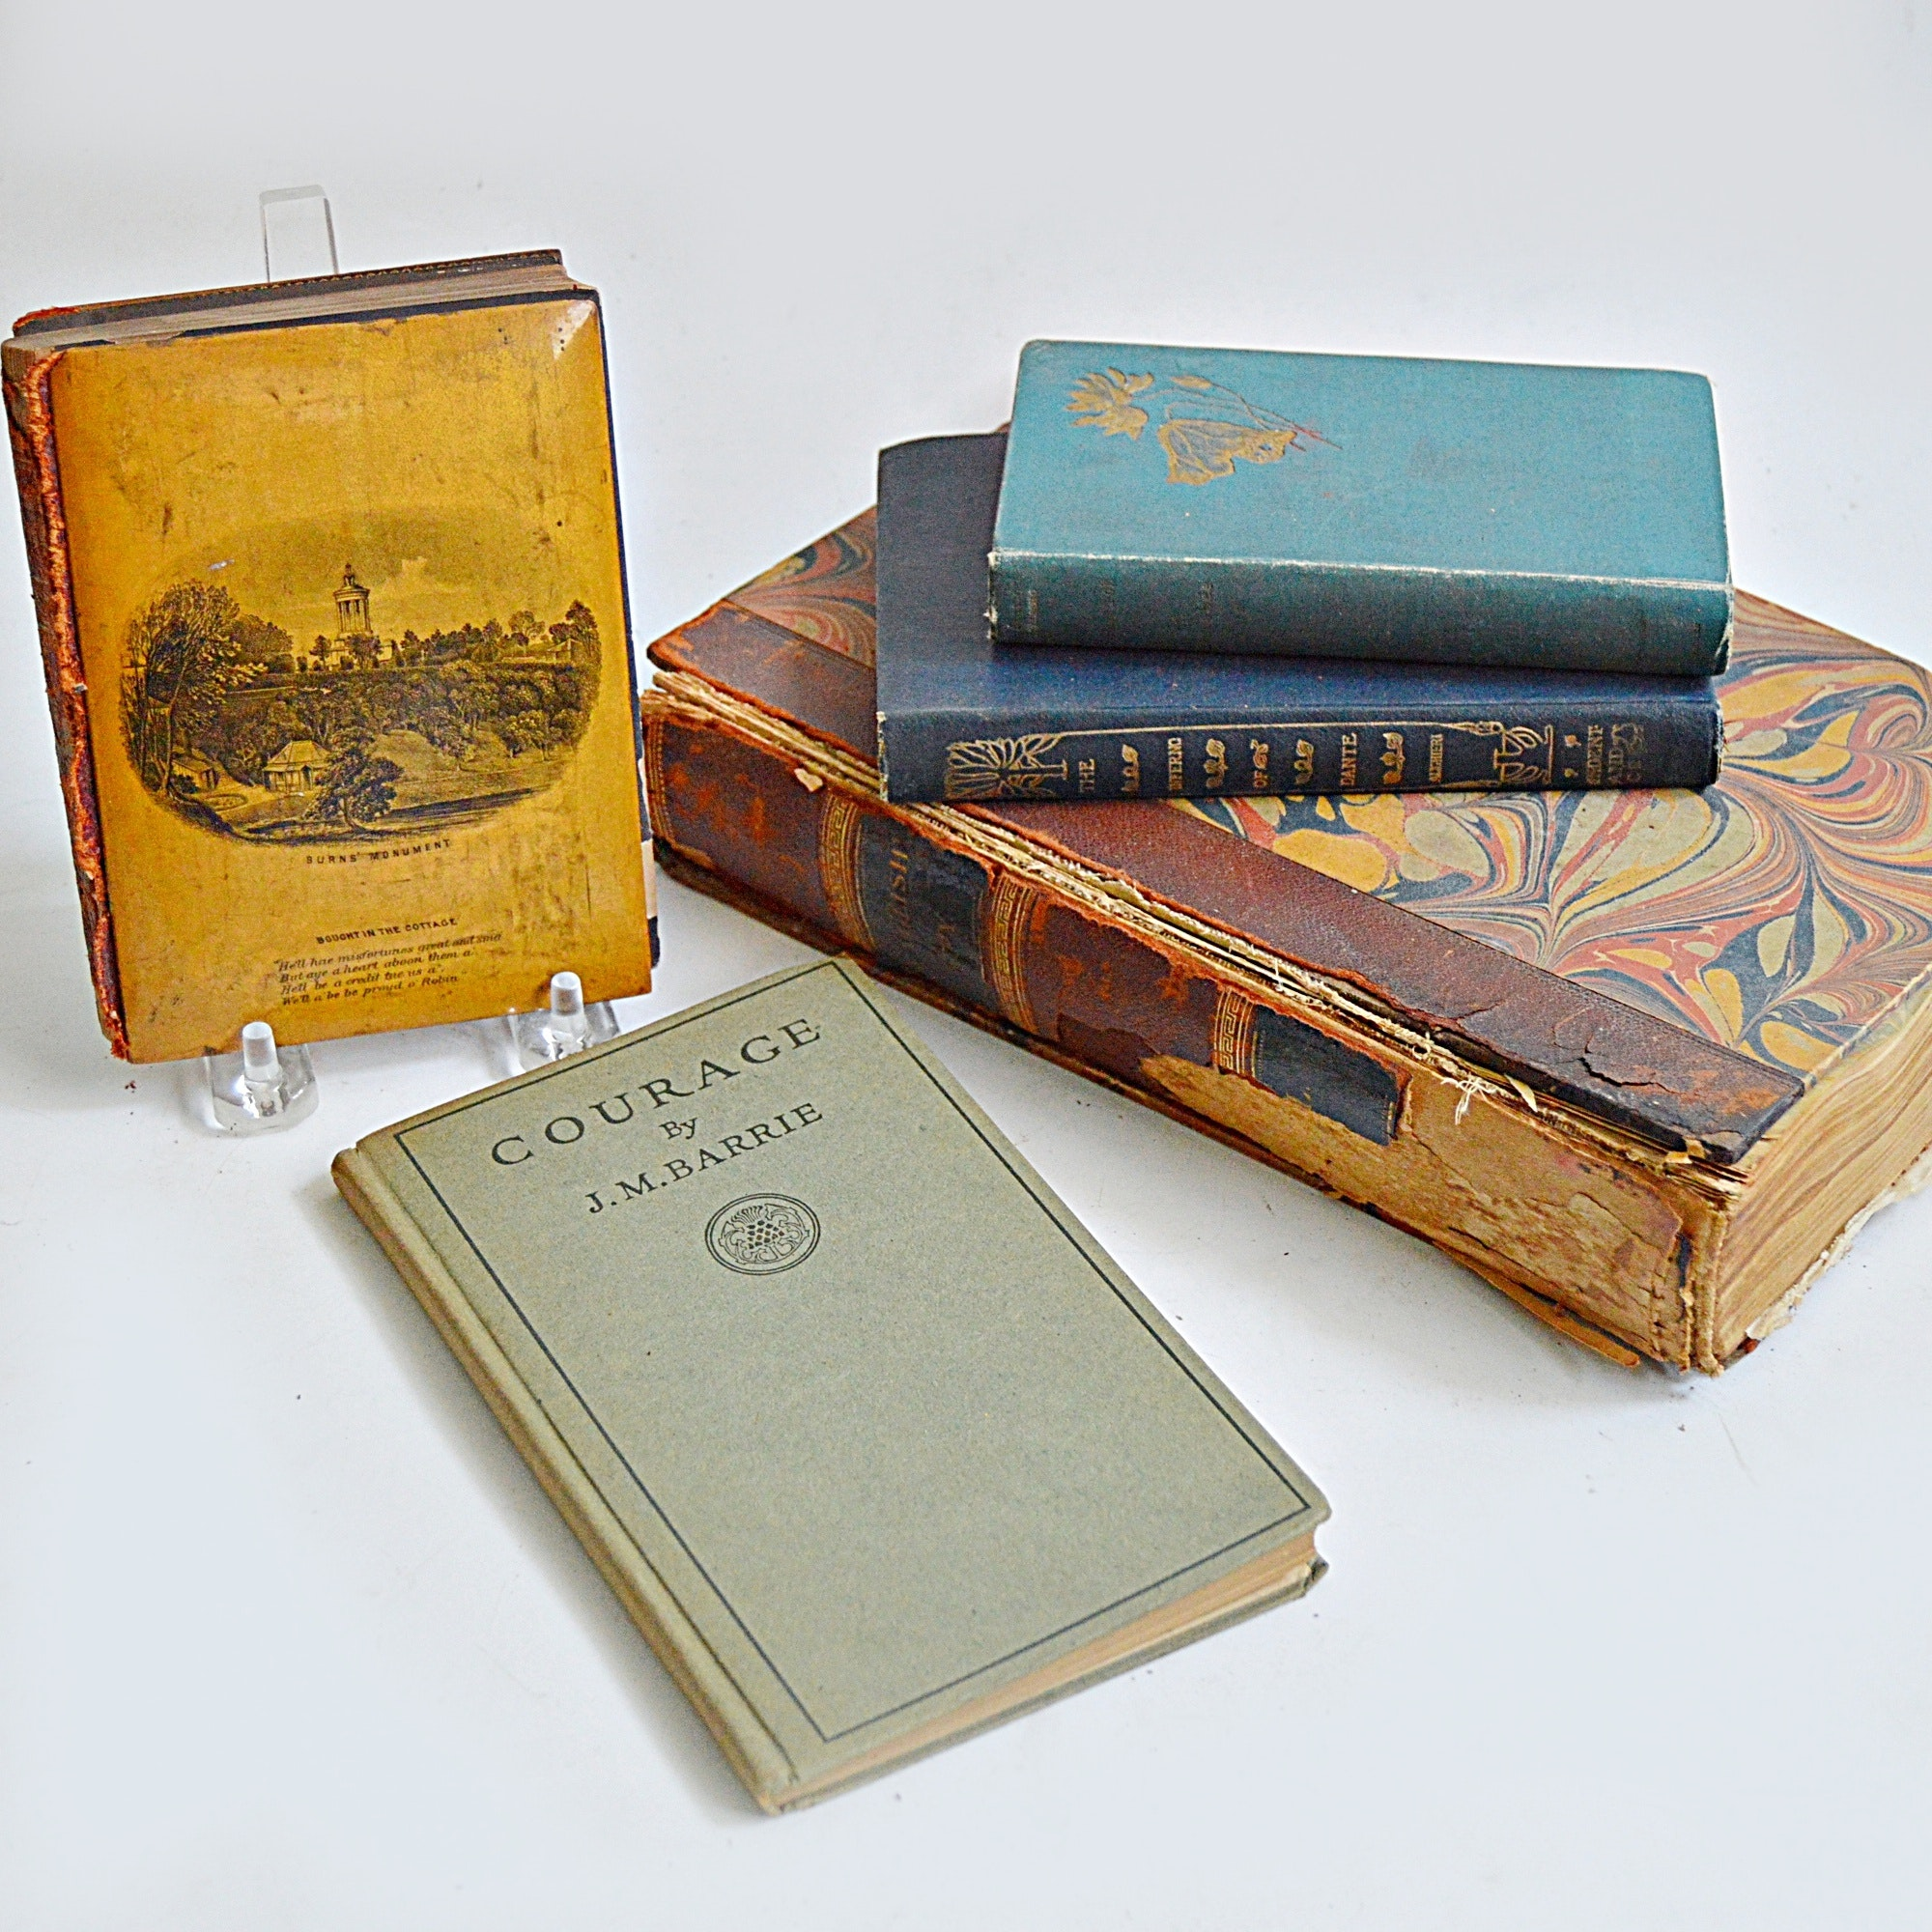 Antique Books with Robert Burns,  J.M. Barrie, Dante's Inferno Sixth Ed.